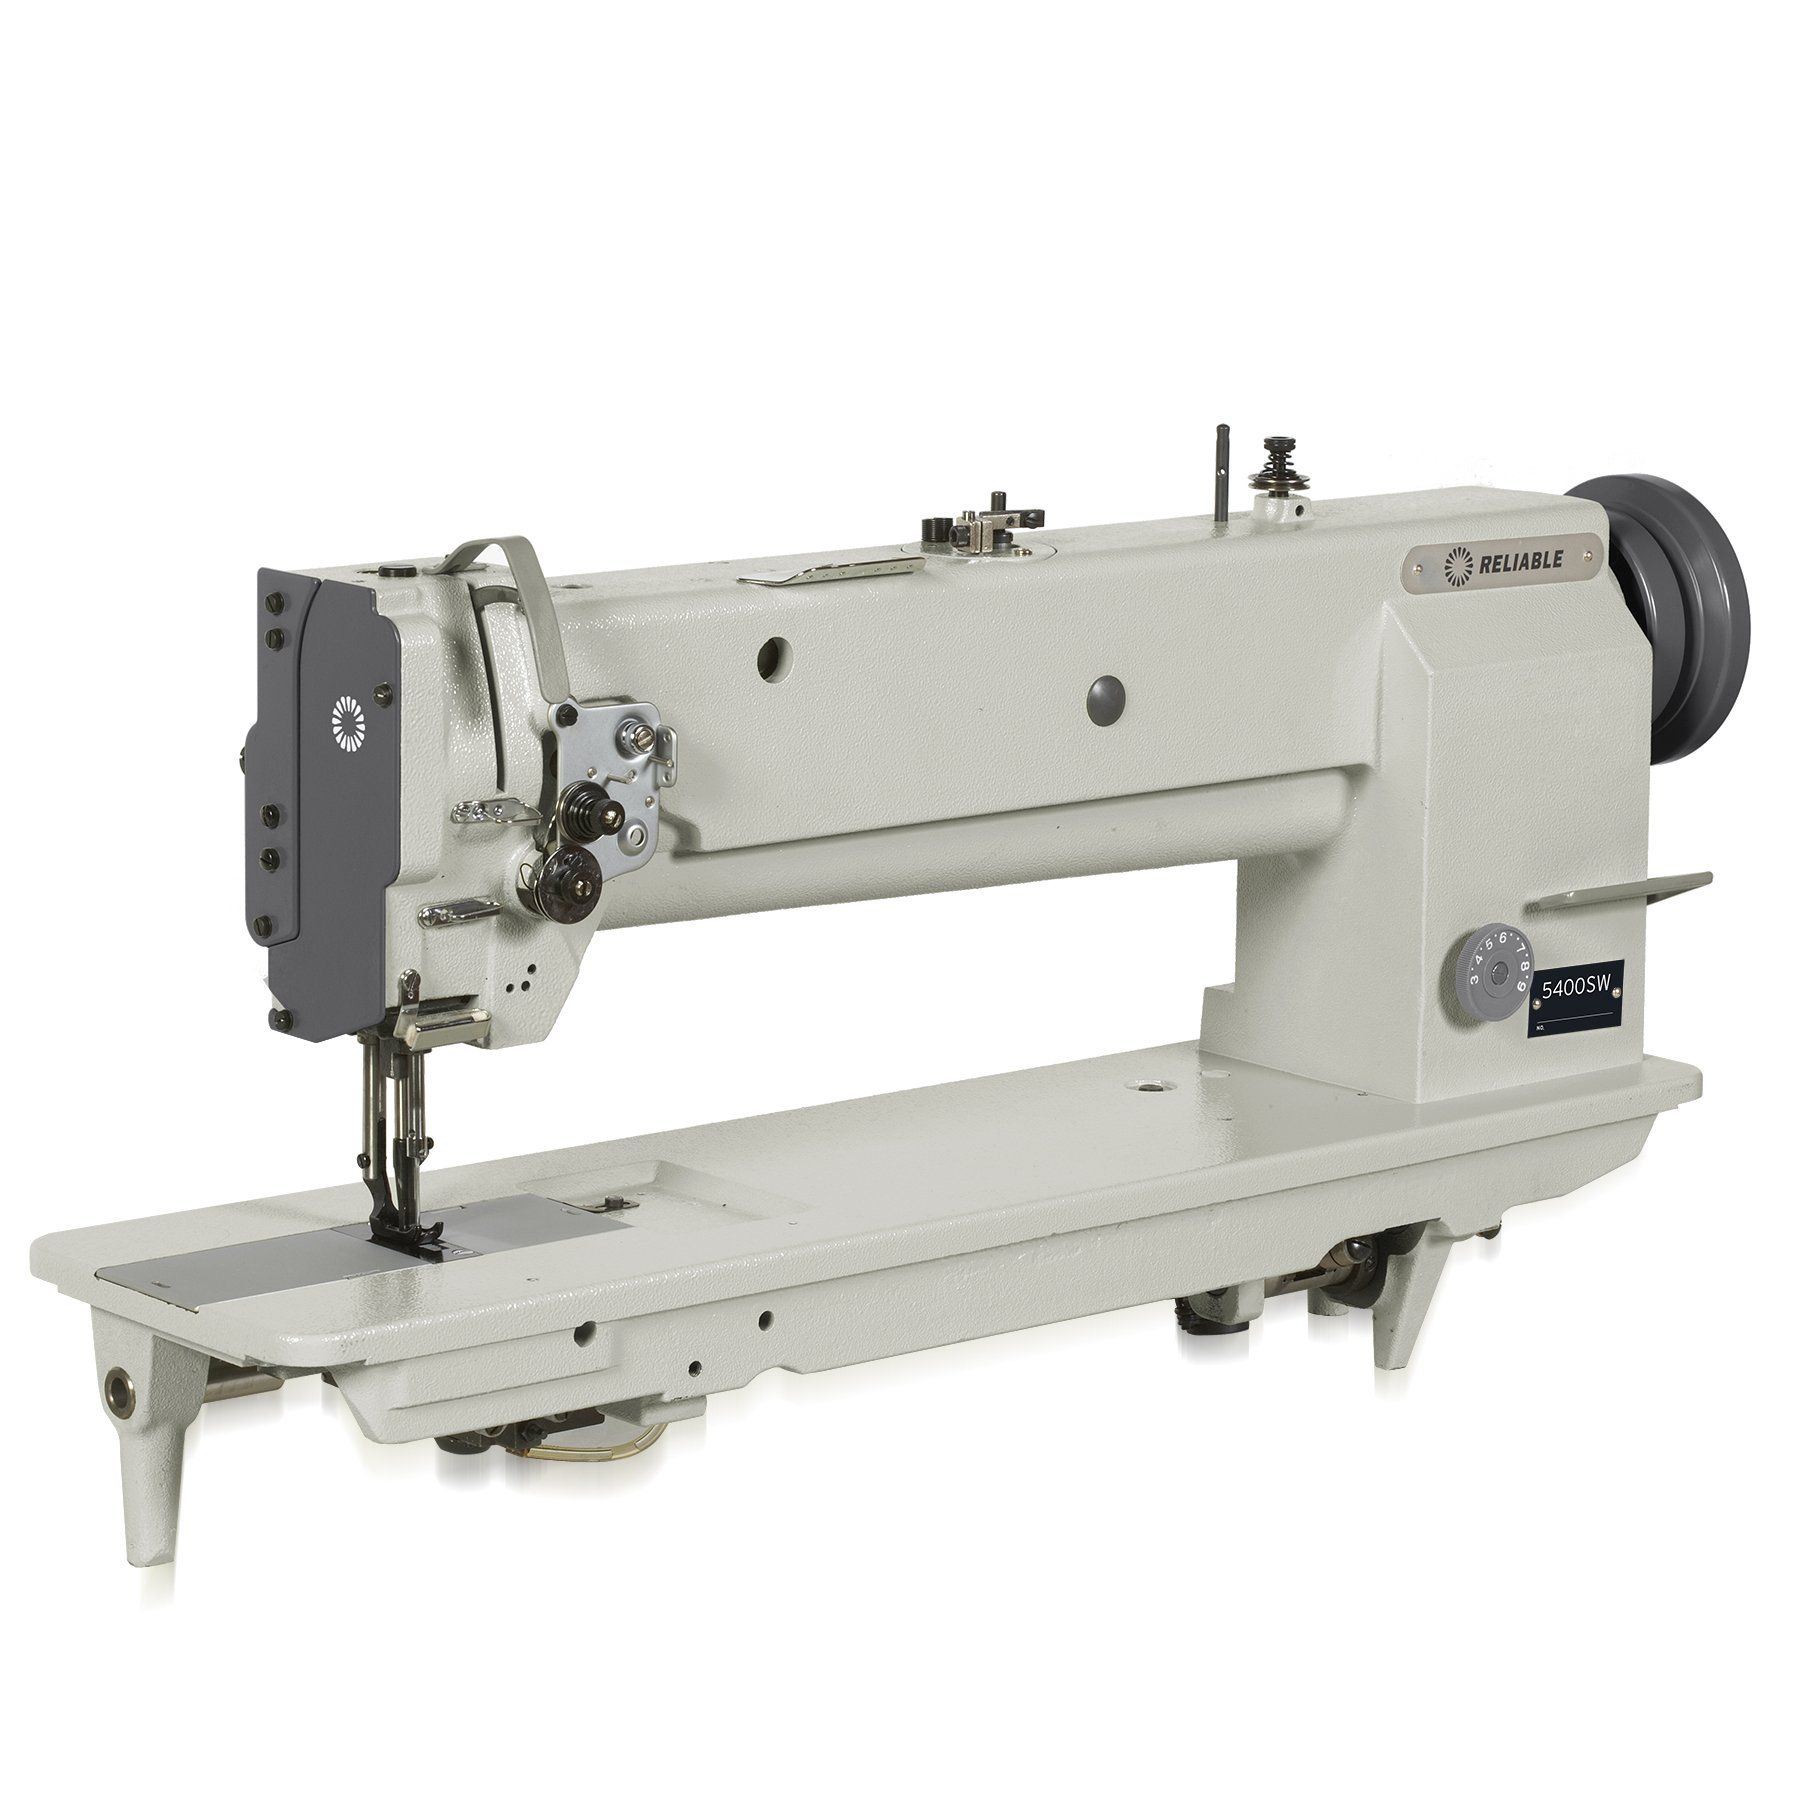 Reliable MSK-8400BL-18 18-Inch Long Arm, Single Needle Walking Foot Sewing Machine with Sewquiet Servomotor. Stitch dial and reverse lever. Built-in bobbin winder. Sewquiet 5000 DC servomotor. Superior stand with K-Legs and Bonus UberLight Task Light.